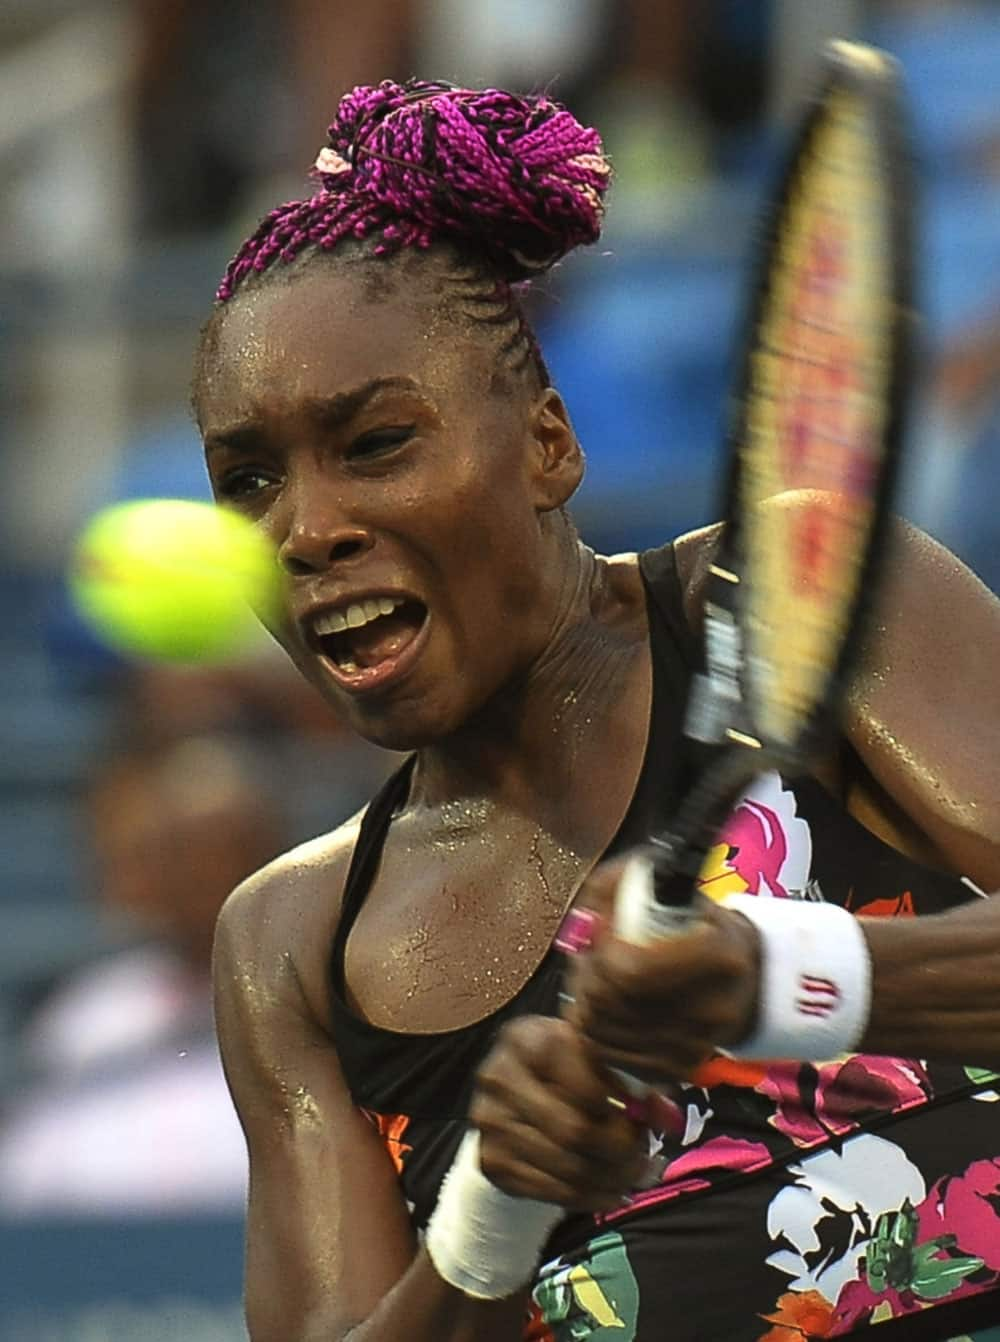 Venus Williams returns a shot to Jie Zheng, of China, during the second round of the 2013 US Open tennis tournament.